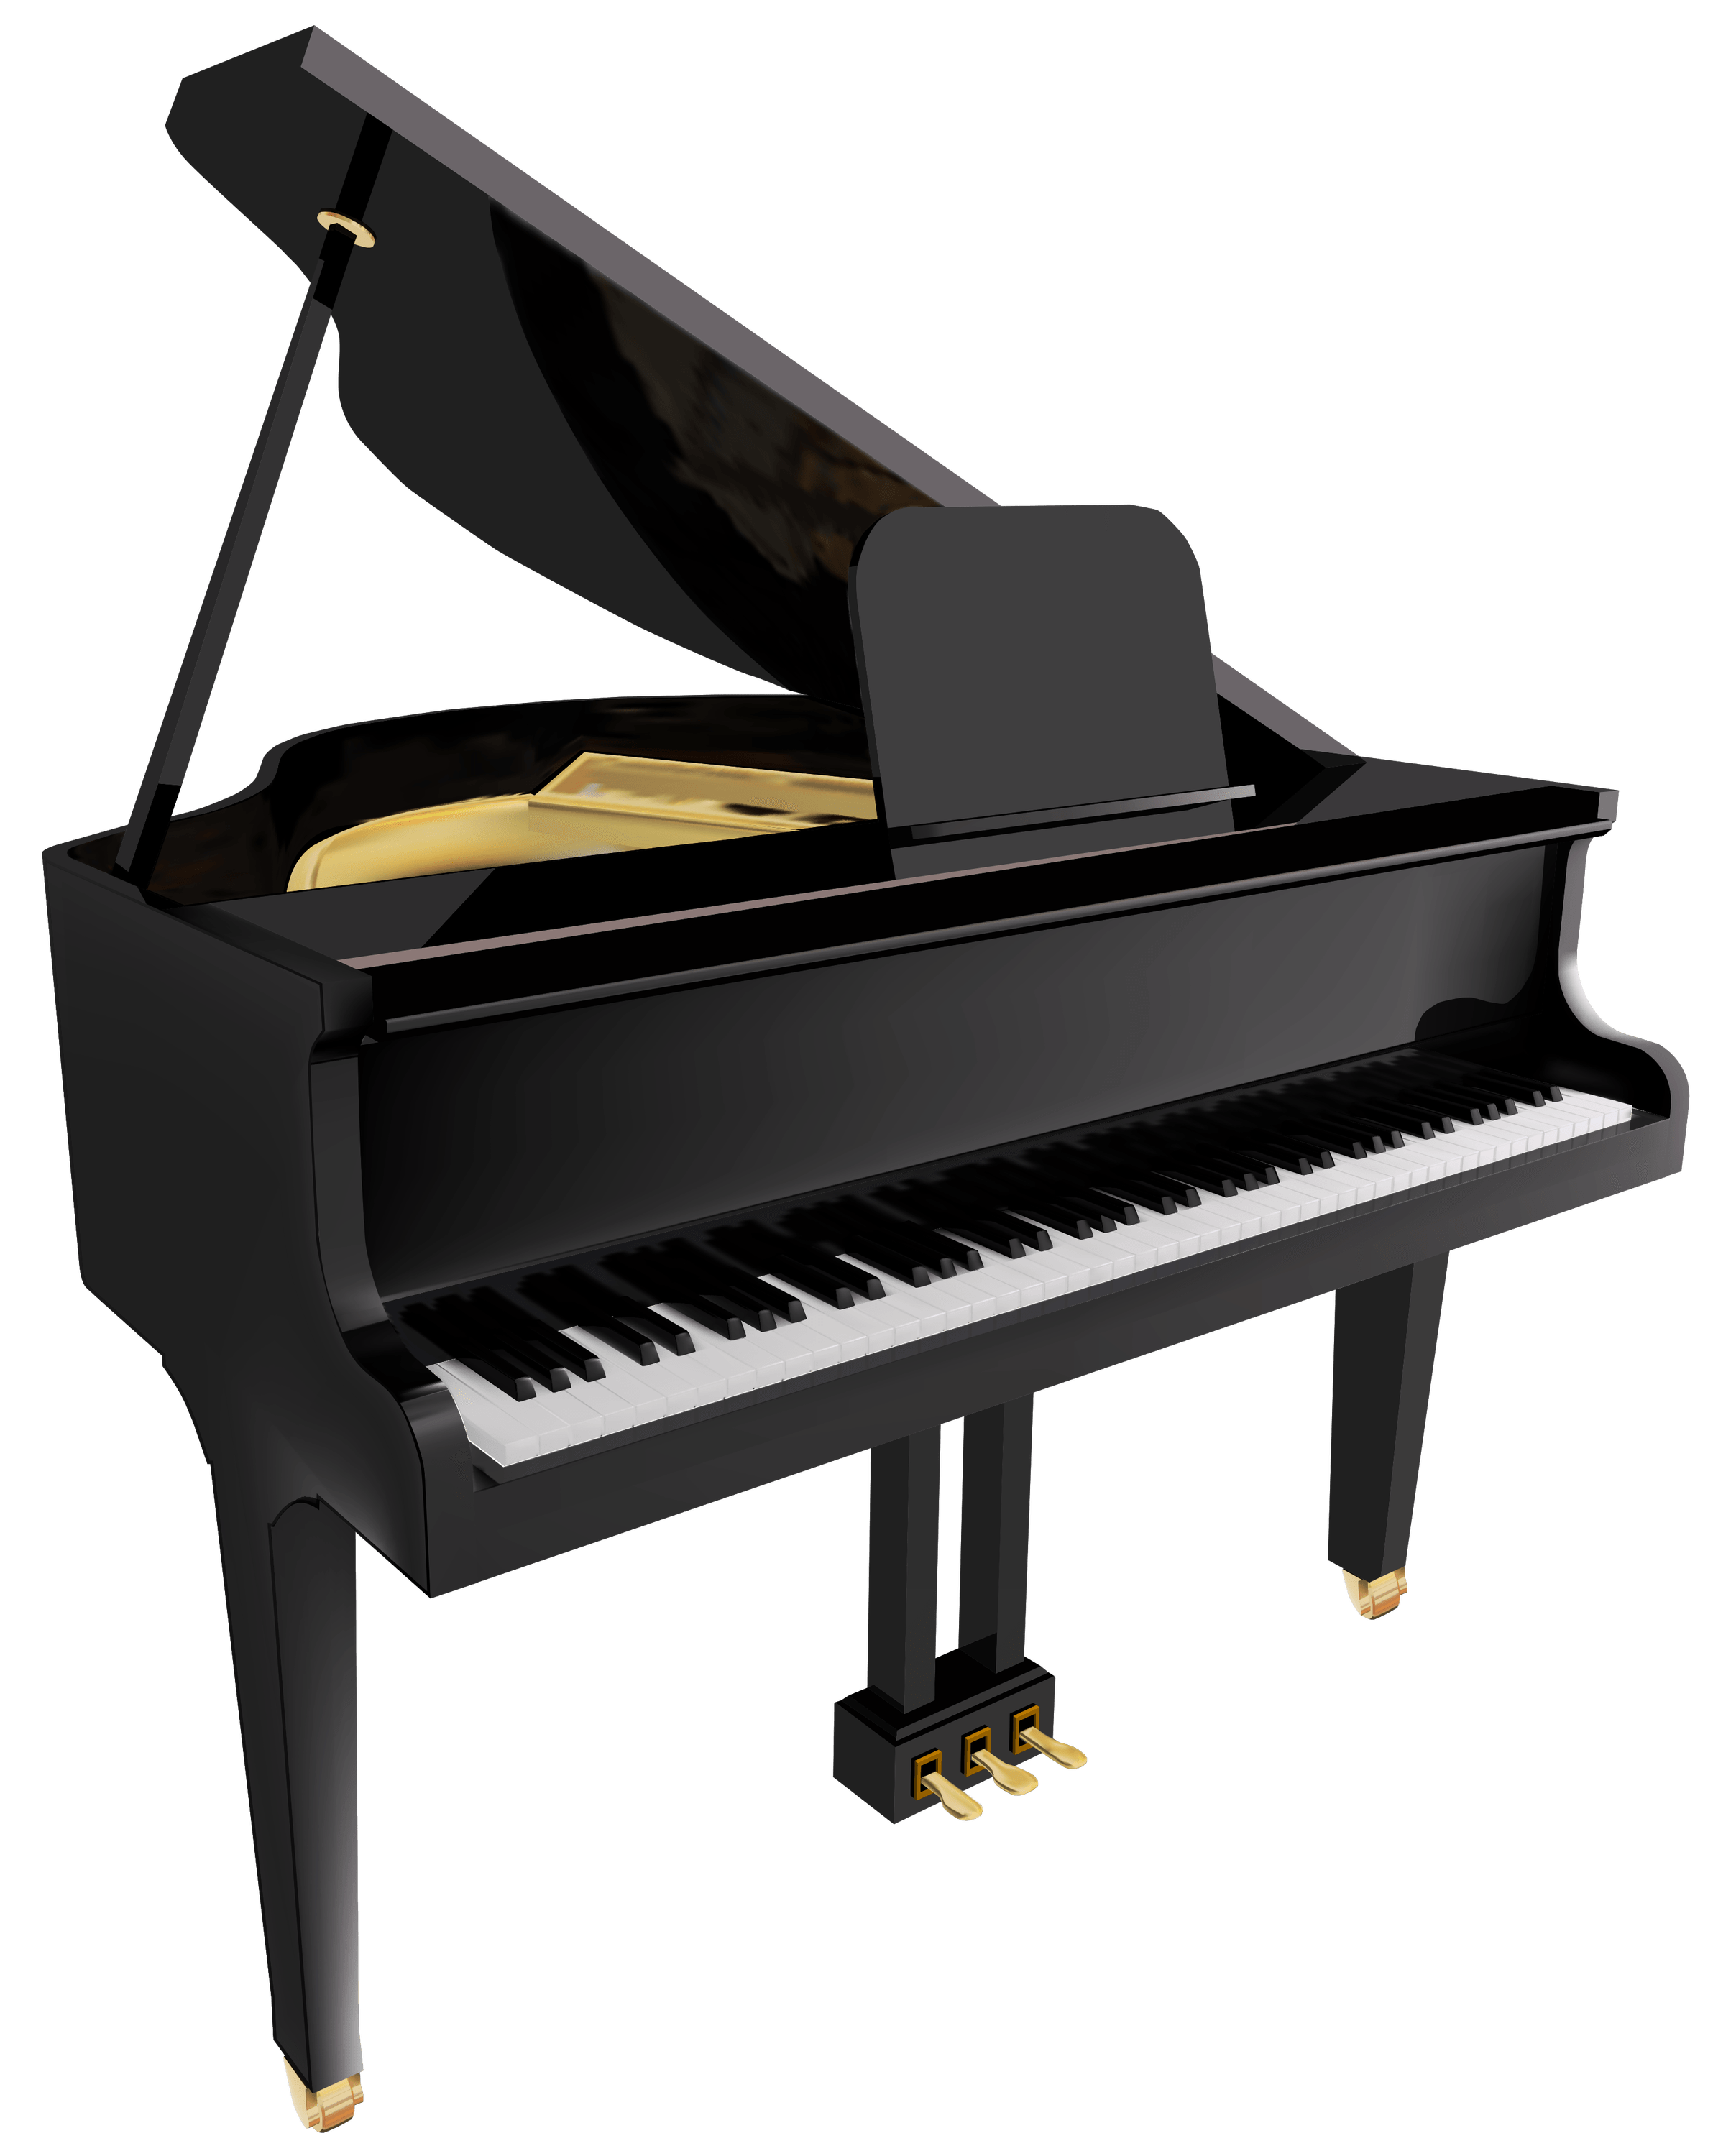 piano clipart transparent png stickpng rh stickpng com piano clipart black and white piano clipart png